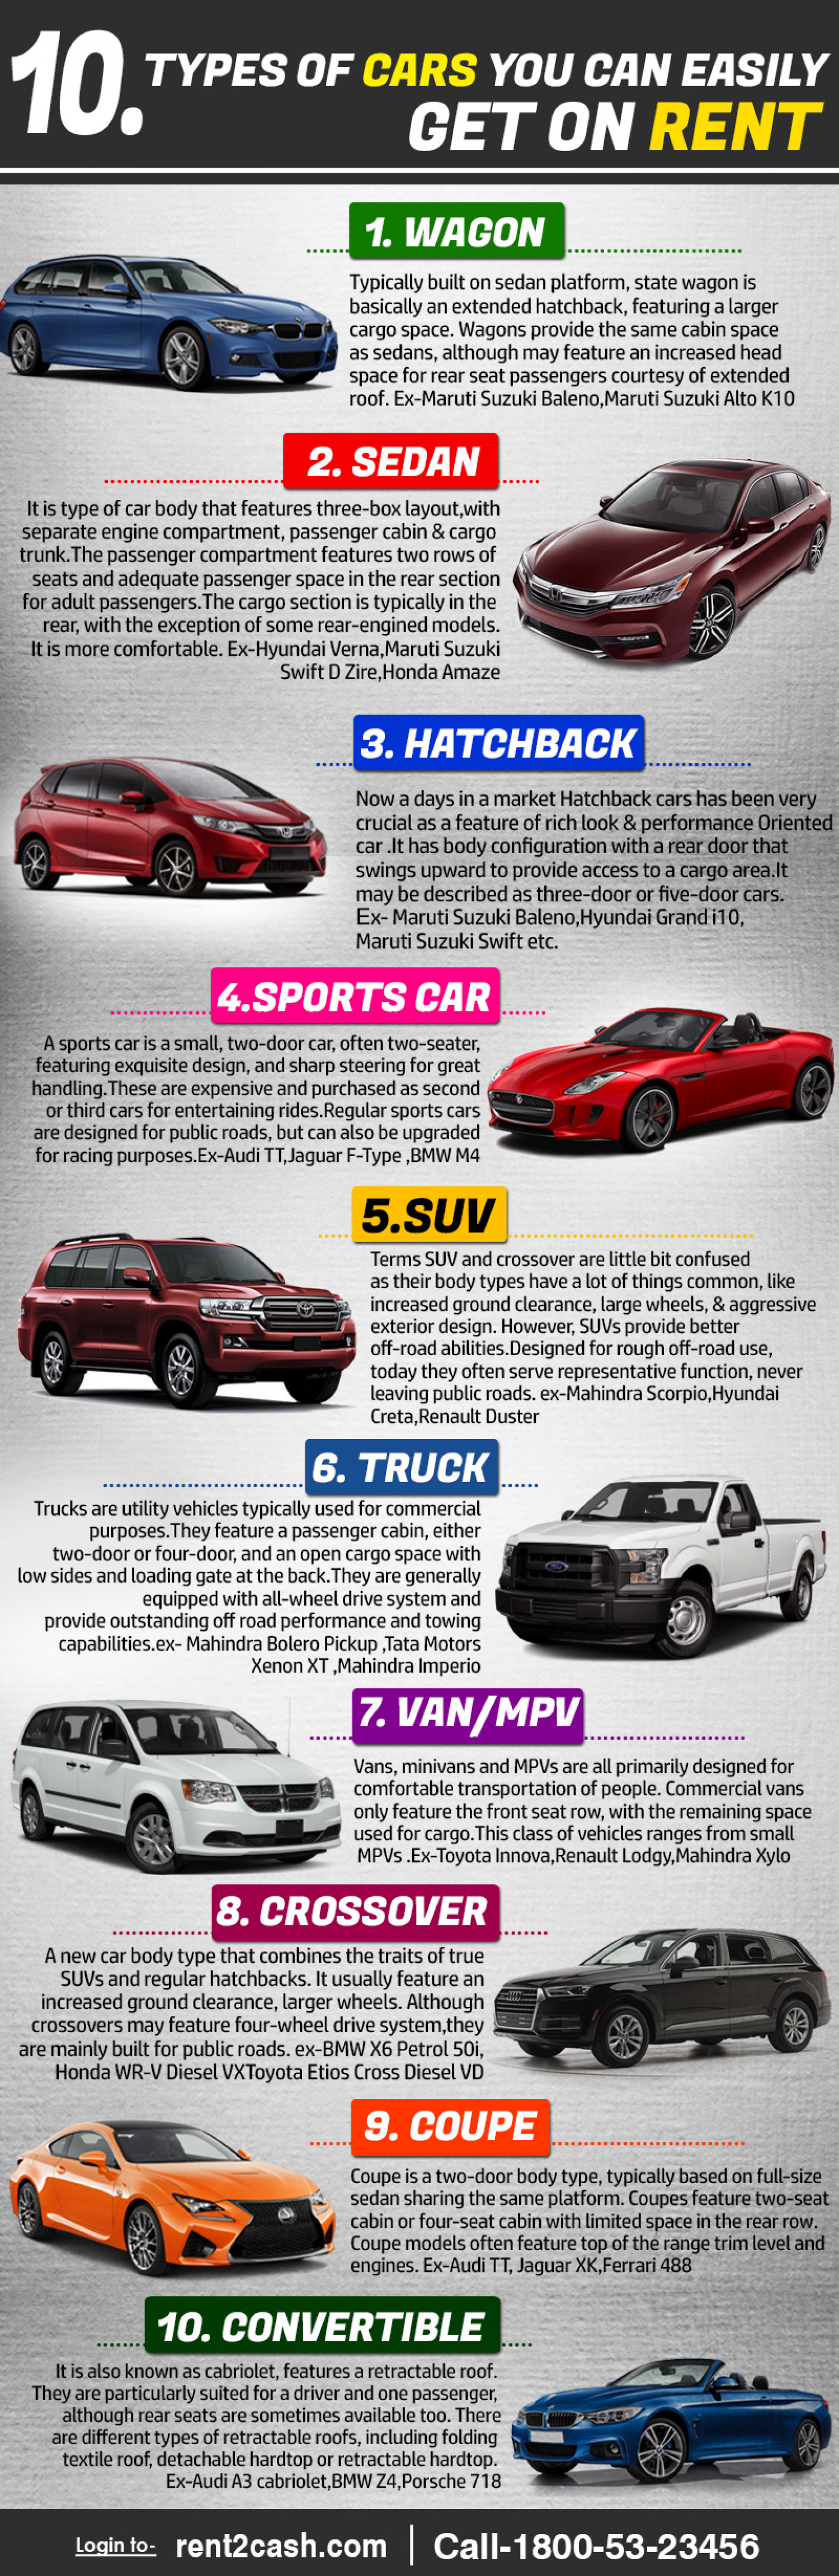 Different types of car that you can get on rent in India Infographic